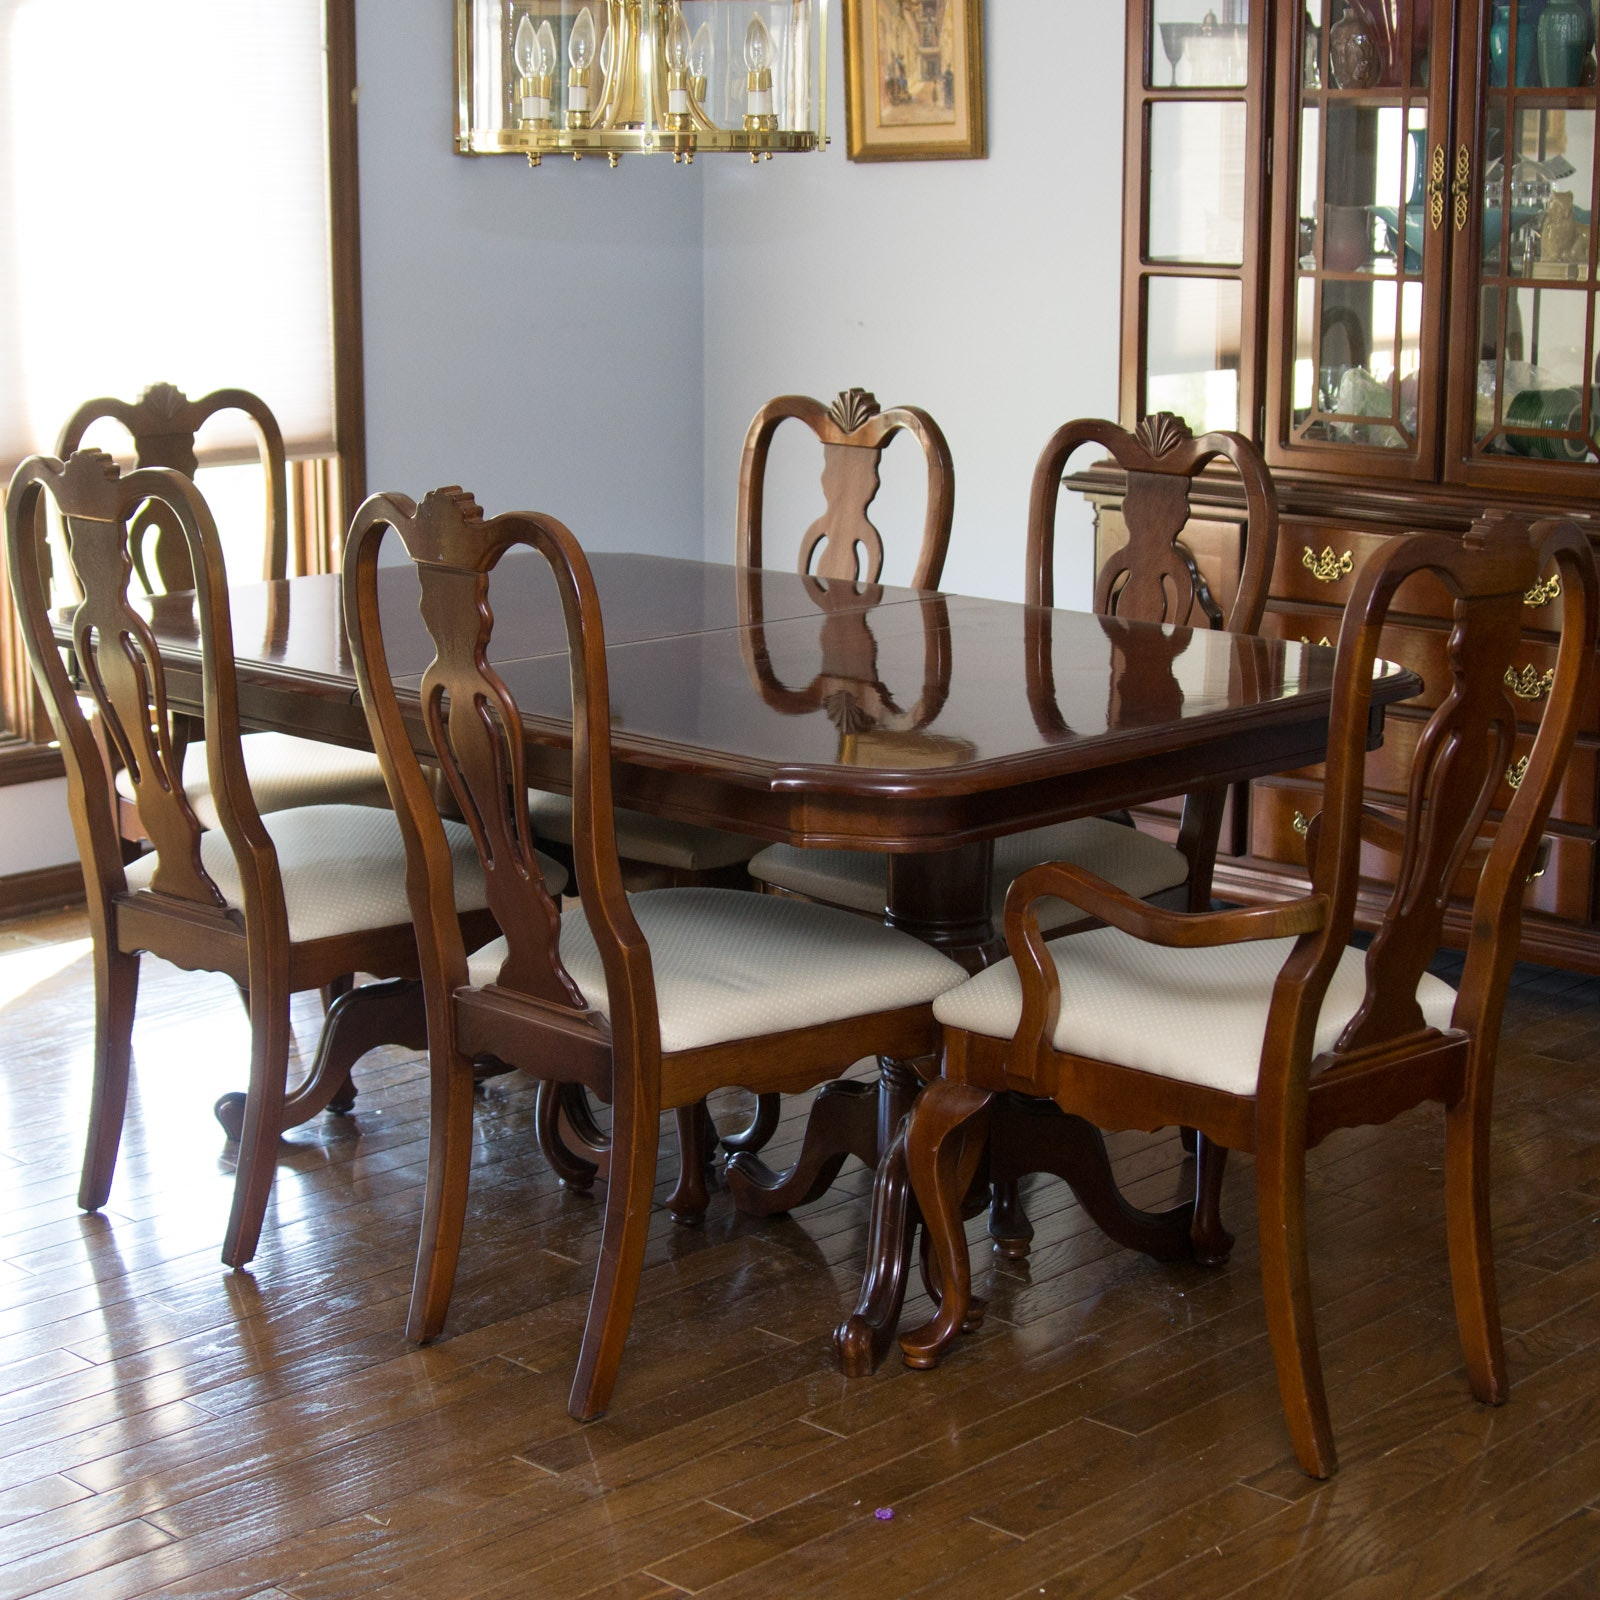 Charmant Dixie Furniture Company Queen Anne Style Dining Table And Chairs ...